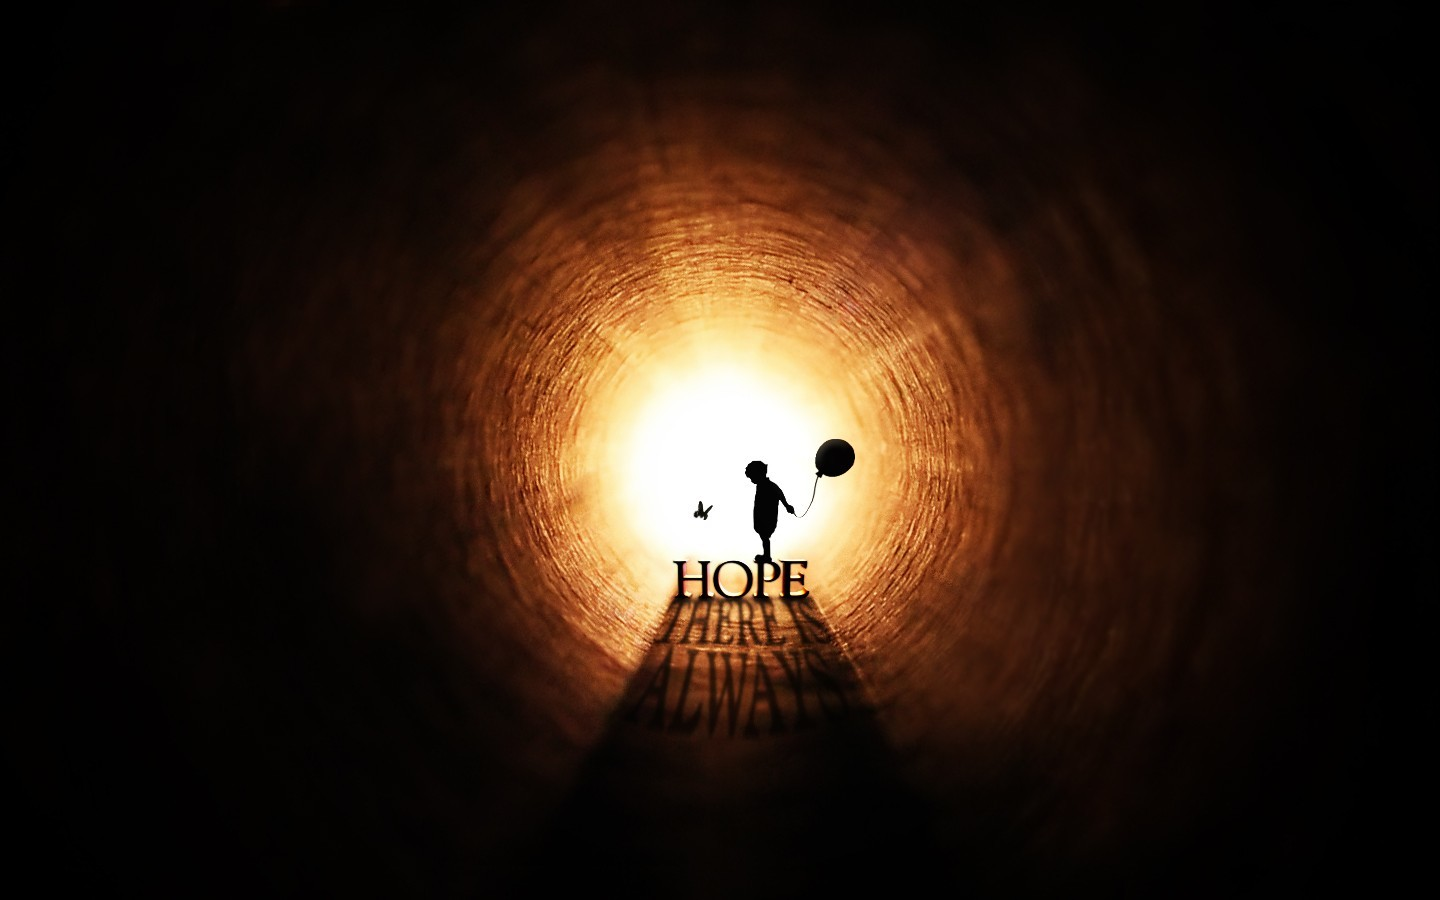 hope HD Wallpaper